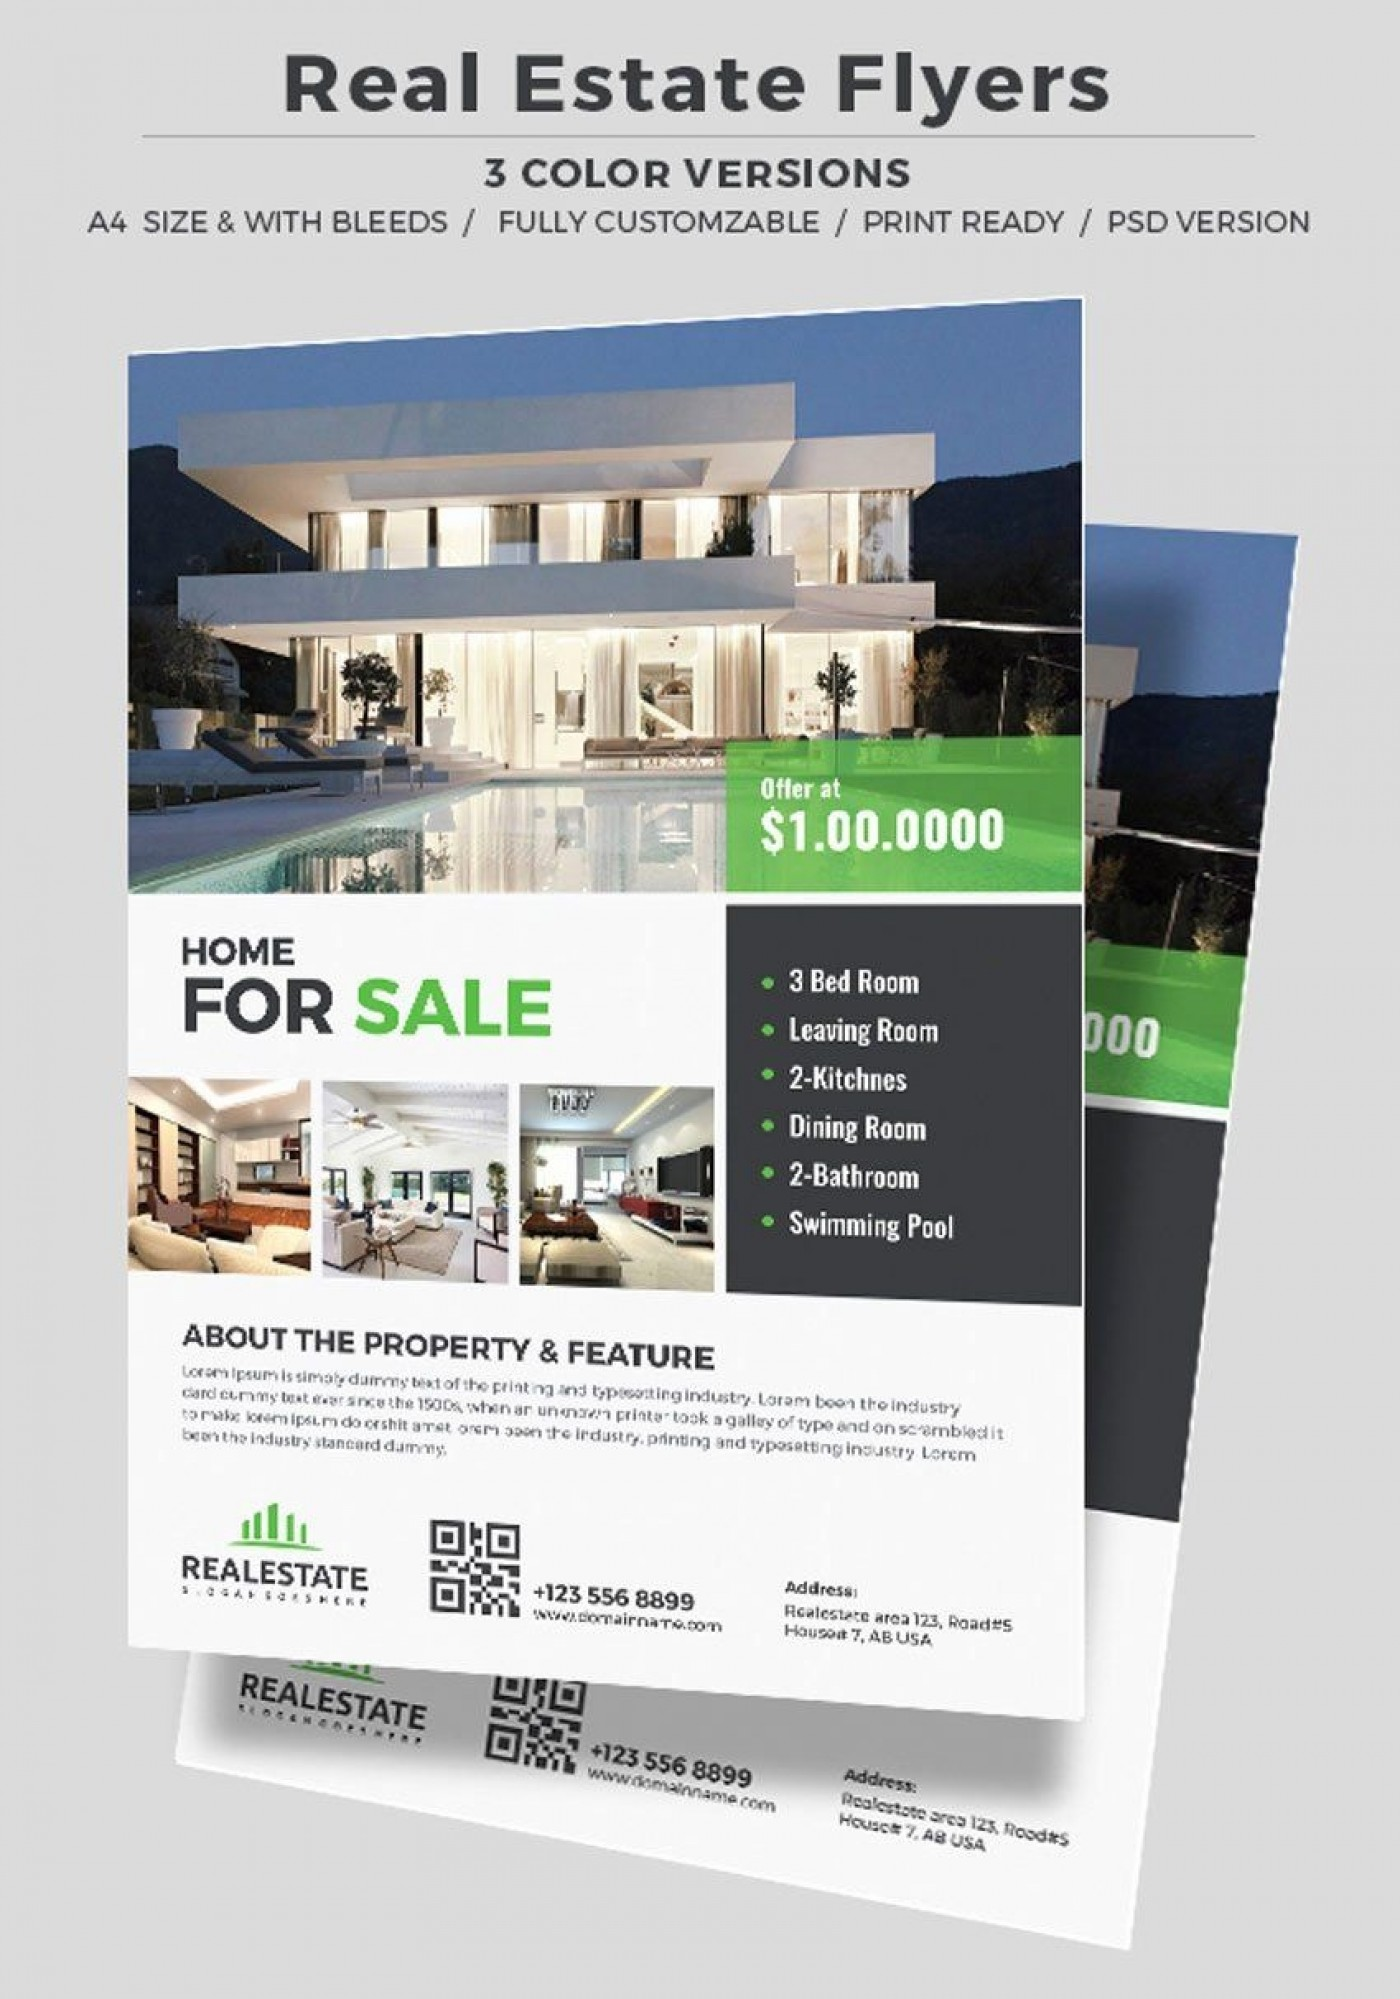 002 Unforgettable Real Estate Advertising Template Photo  Ad Newspaper Classified1400